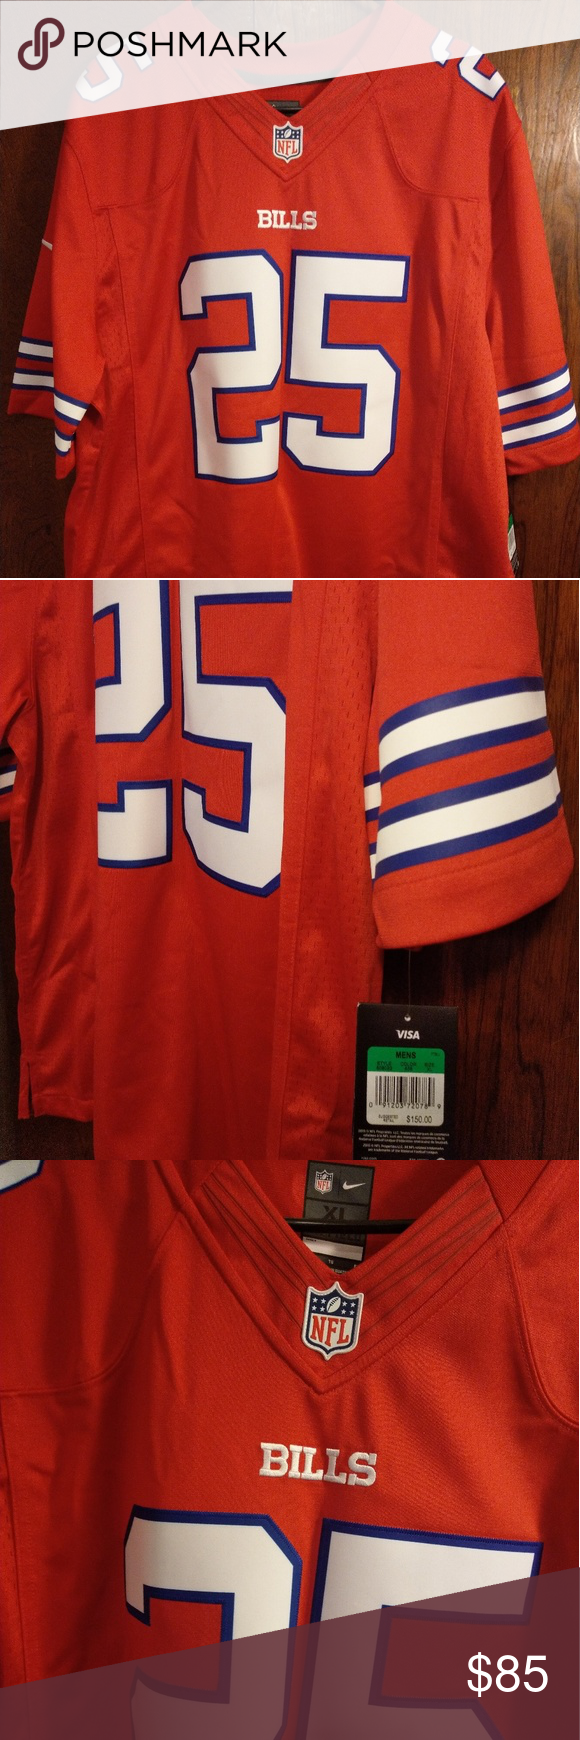 timeless design 73866 af7df Sz XL Nike LeSean McCoy Limited Jersey Color Rush Sz XL Nike ...